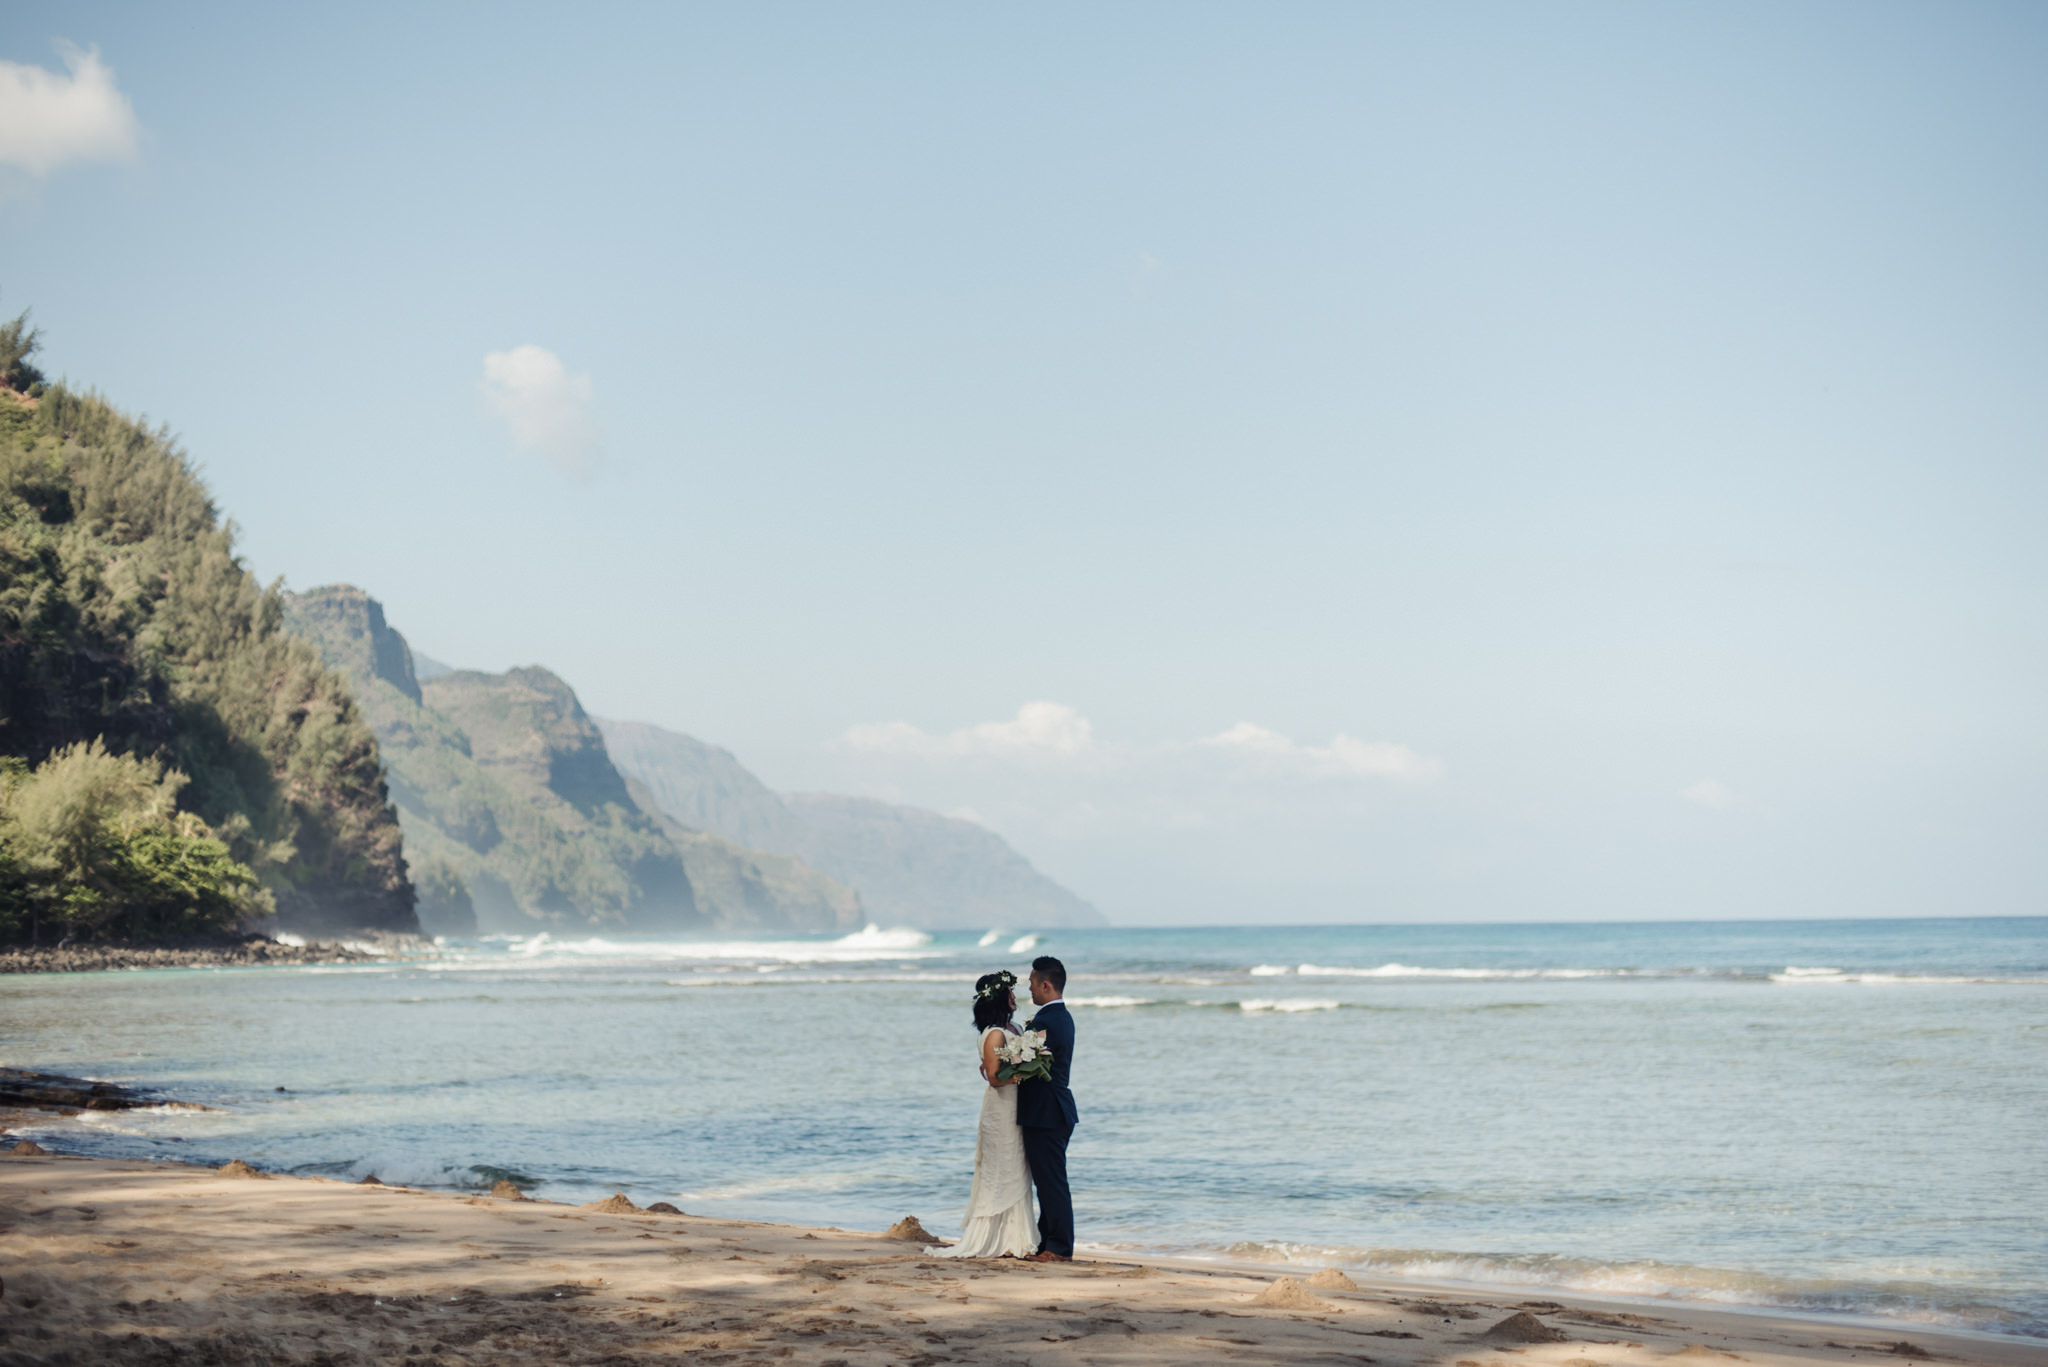 wedding portrait on ke'e beach with na pali coast in background